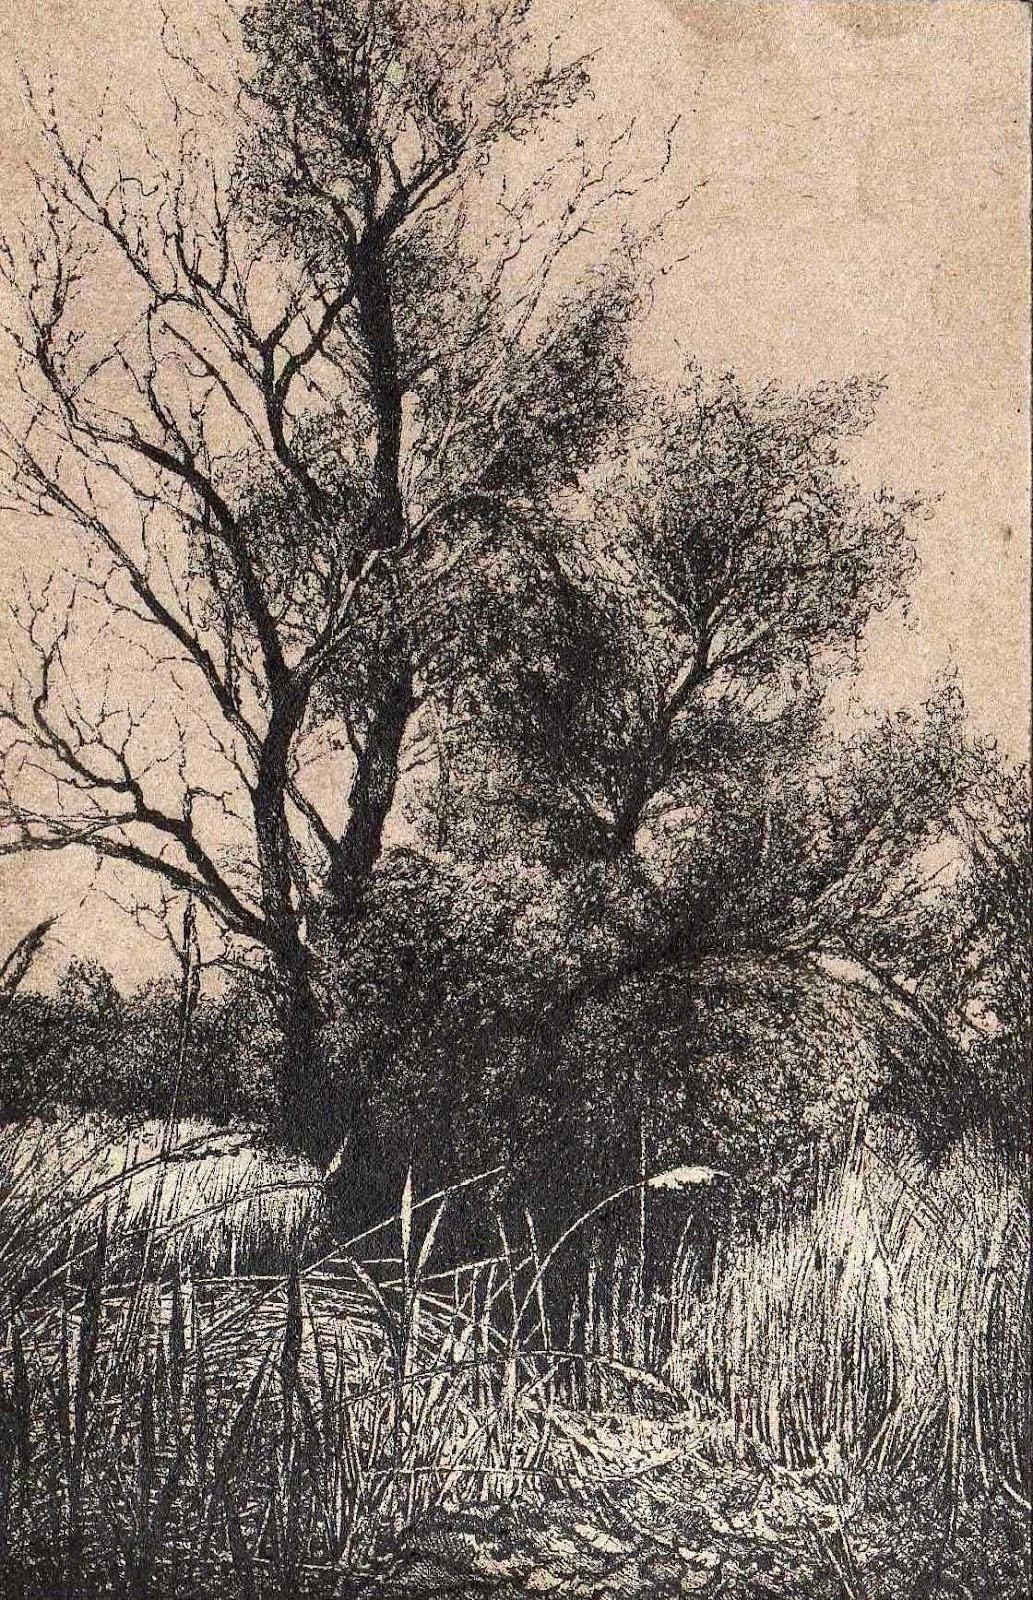 THE CSINCSE CREEK AREA IN THE LOWLANDS I - Miniatura, MMXII - Ink on carton - 5,51 X 3,15 in.jpg